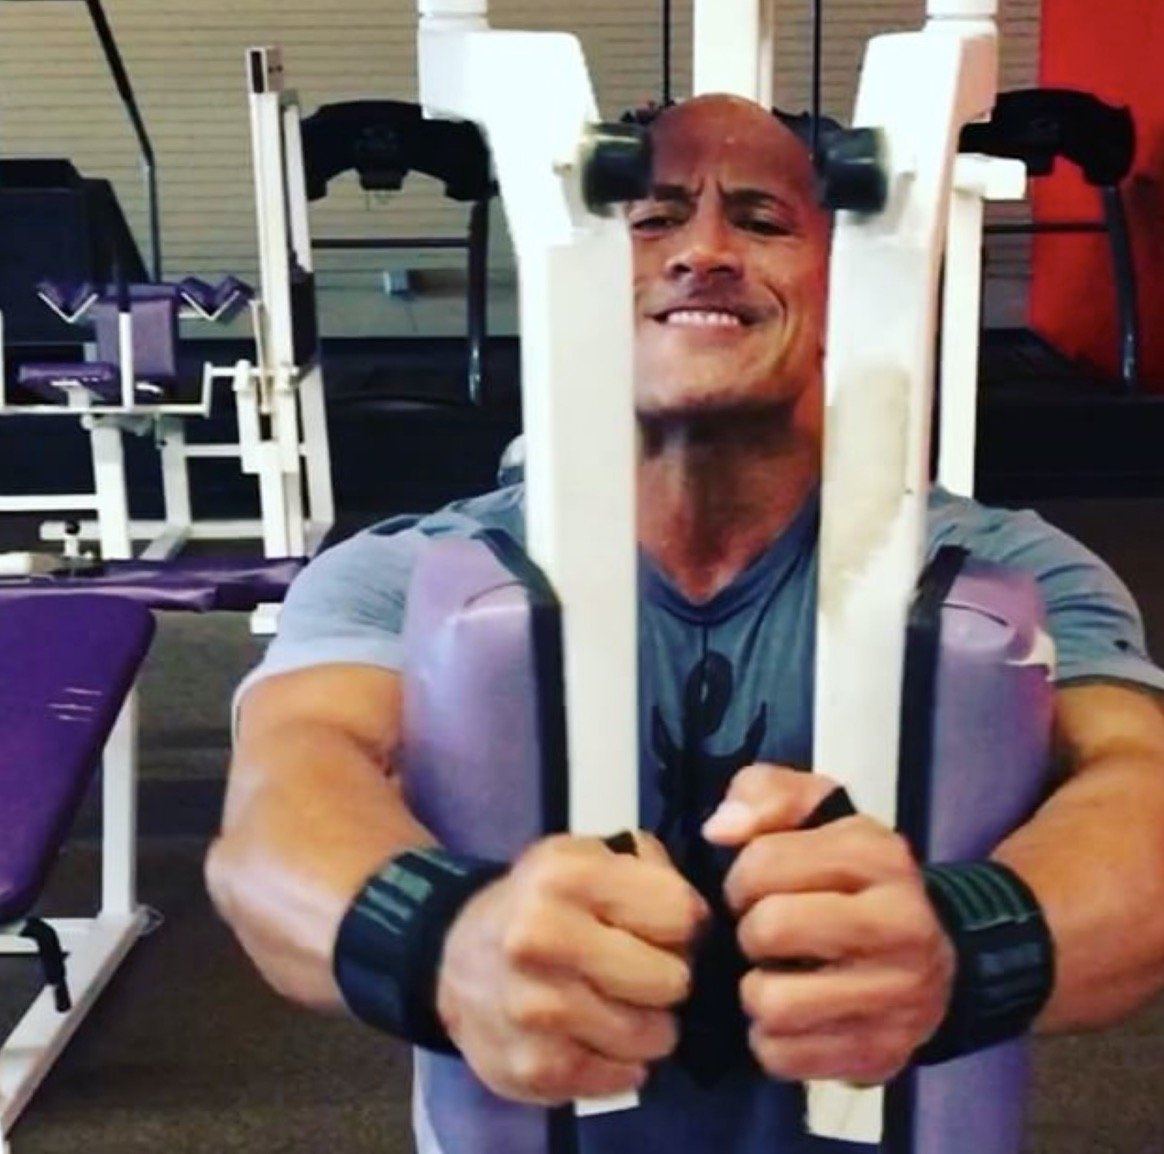 WATCH: The Rock liked the 'Pec Deck' machine so much he bought it